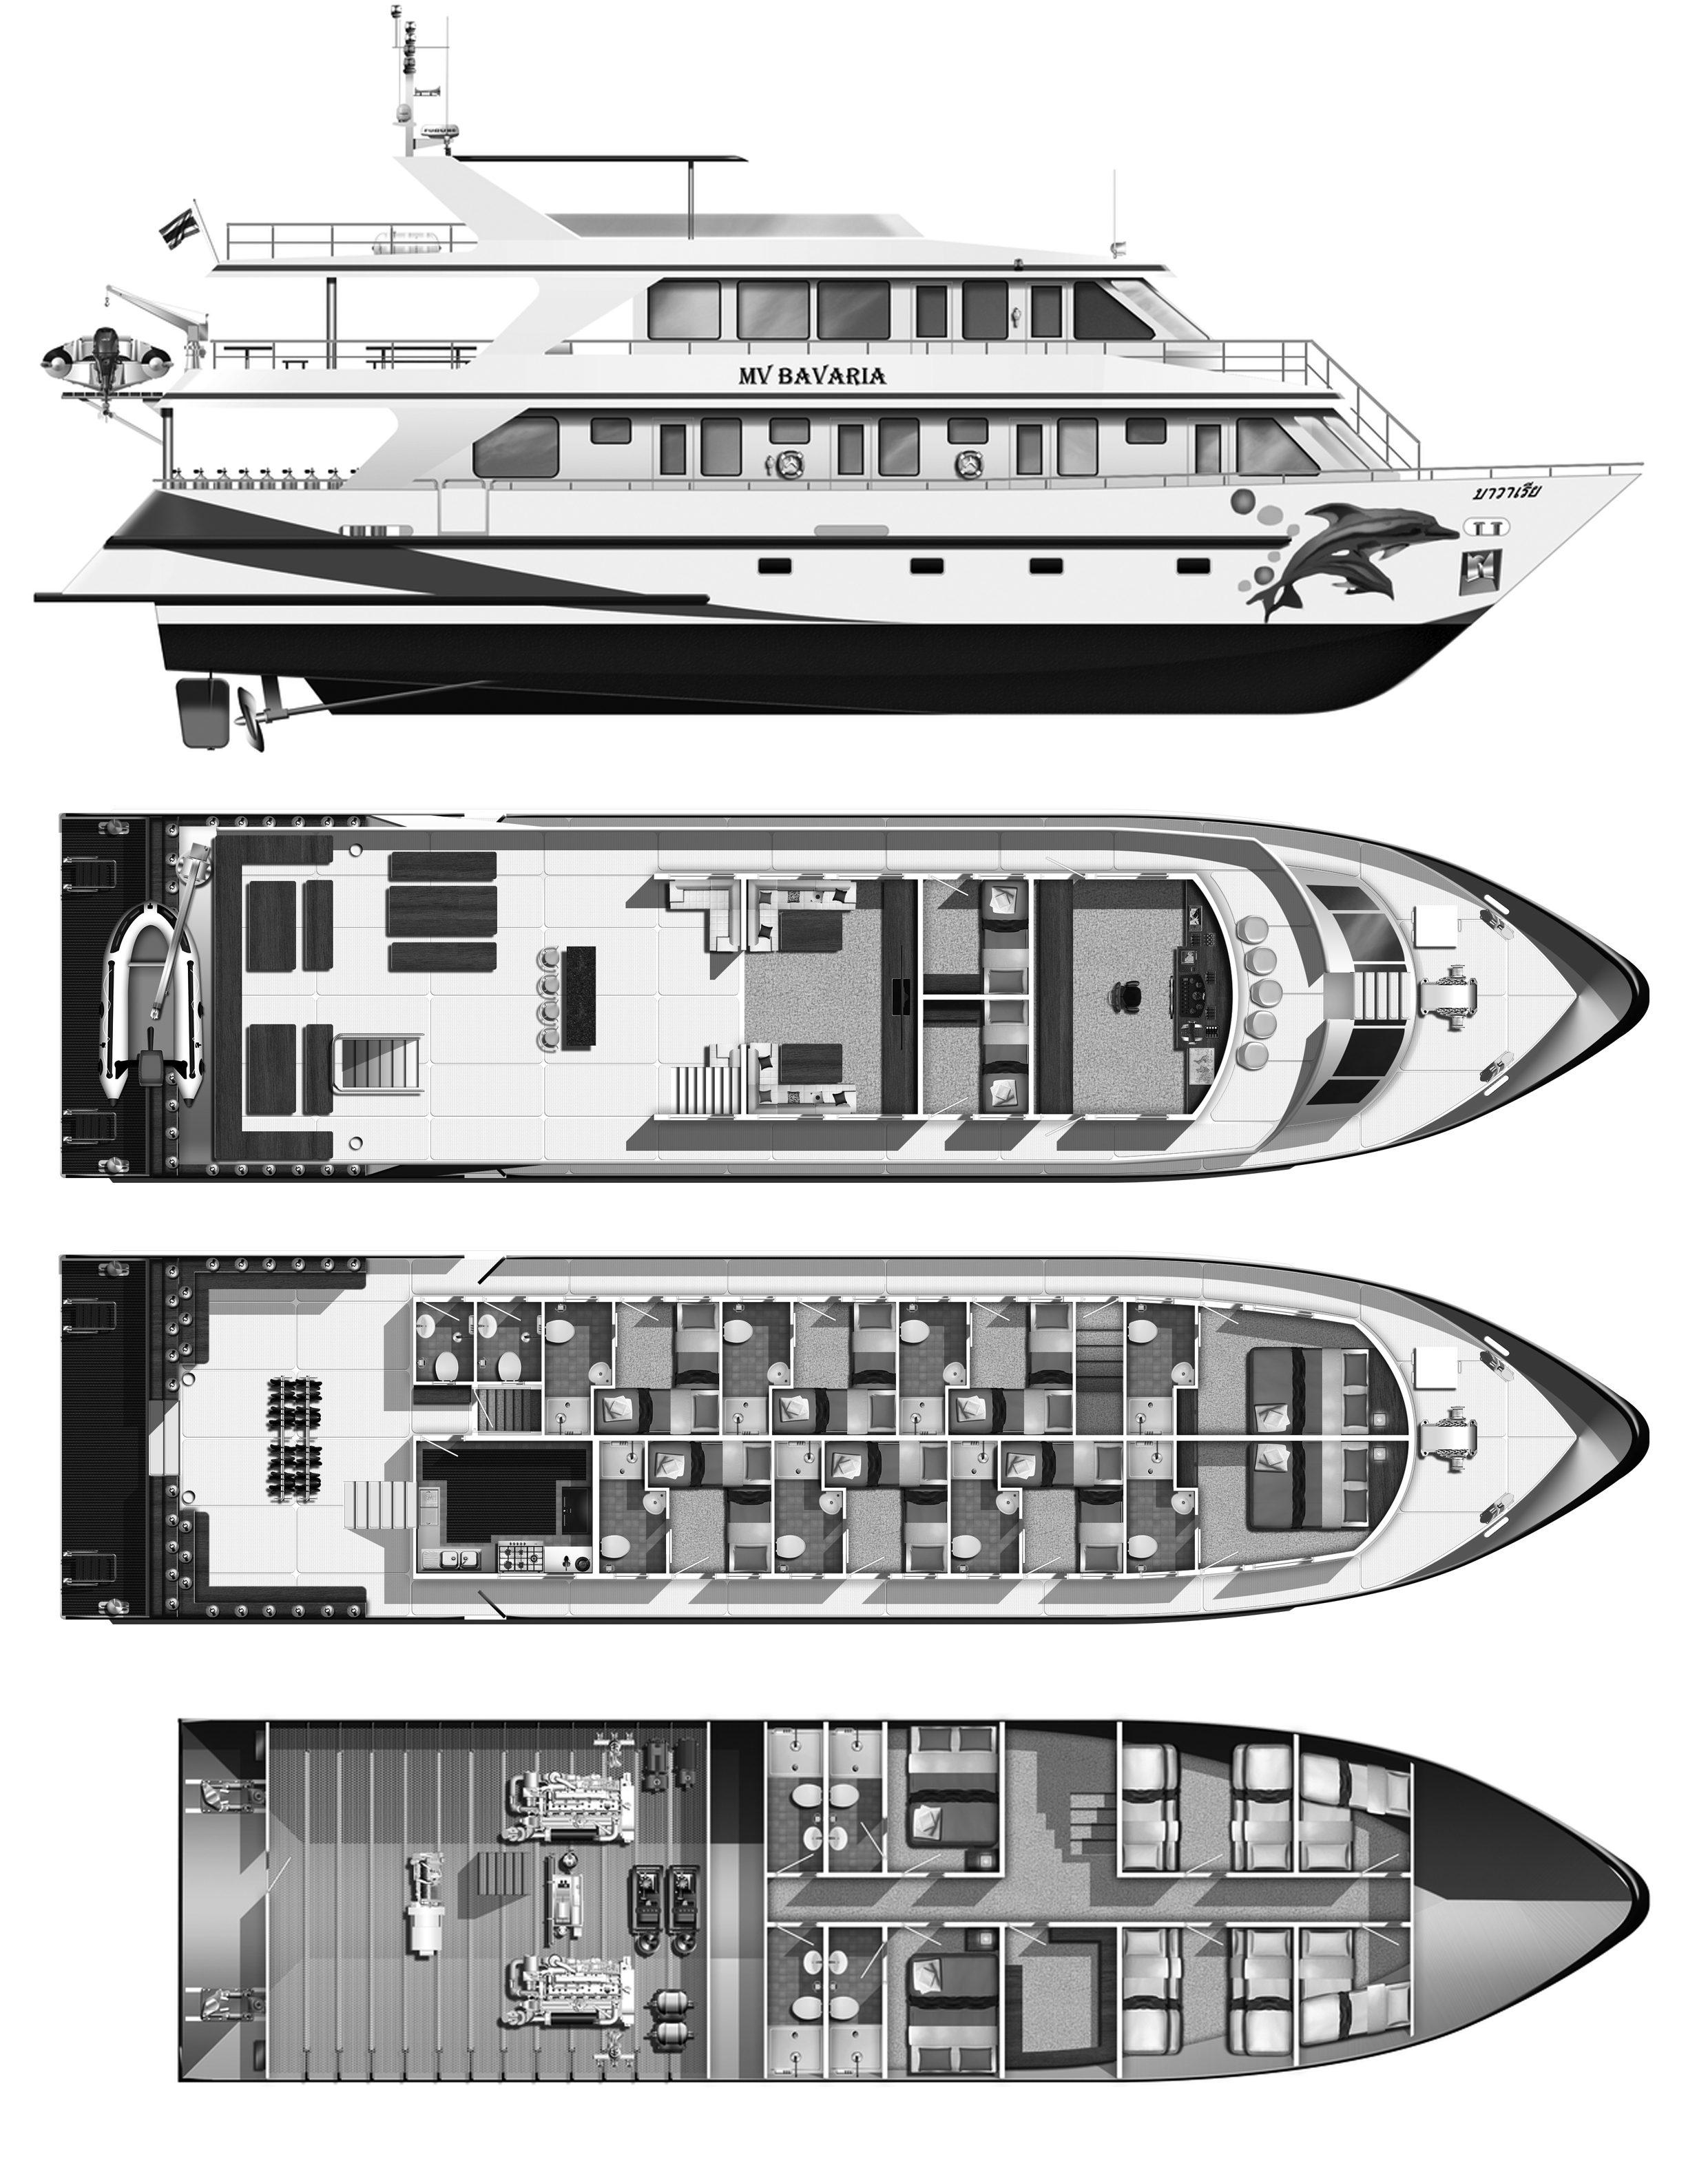 Bavaria - Similan Island Liveaboard boat - Deck Layout